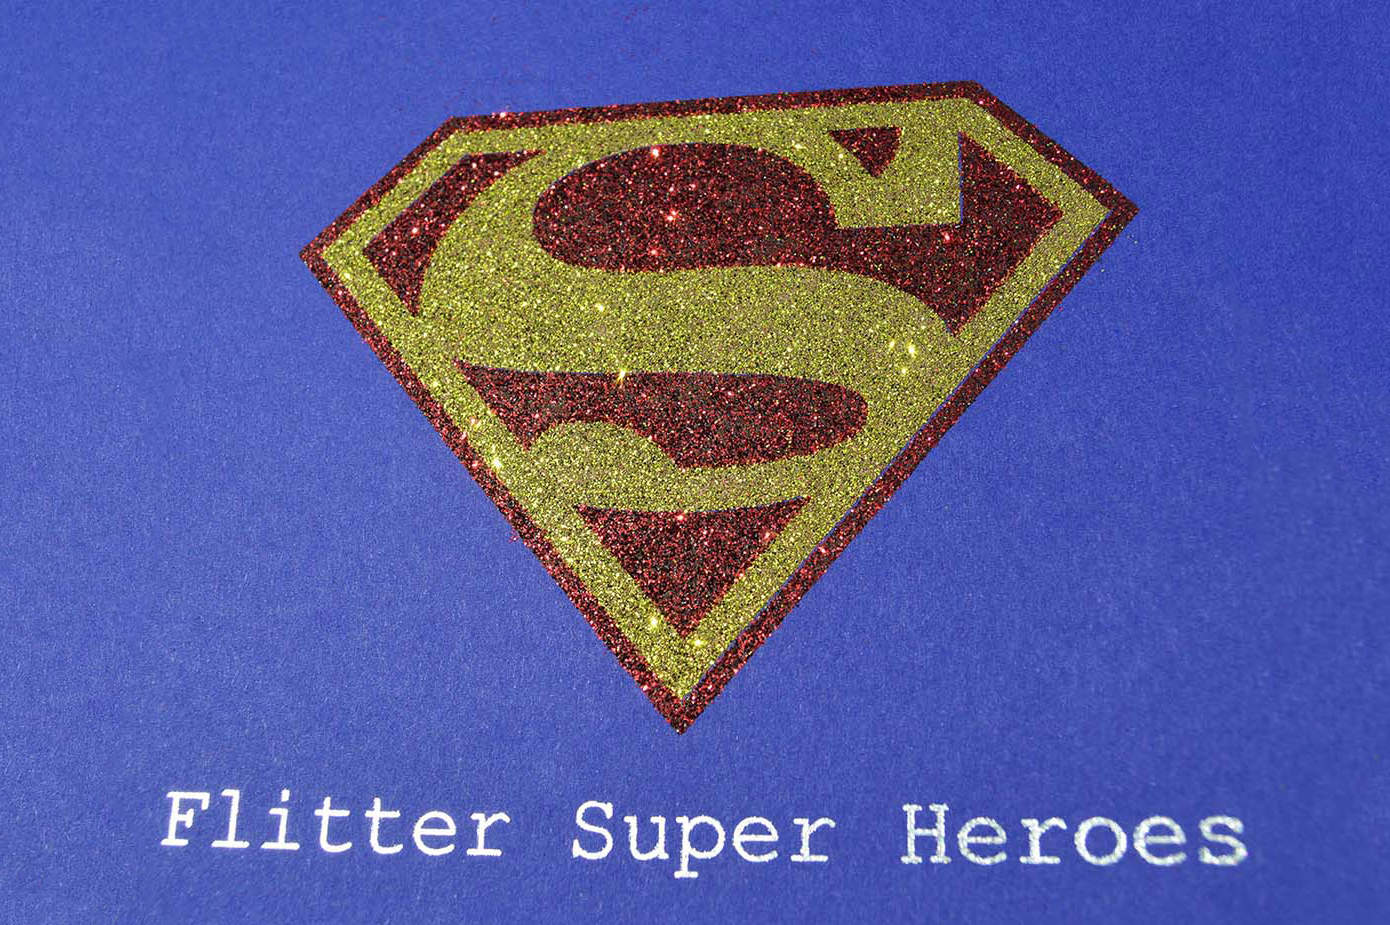 glitter superman logo